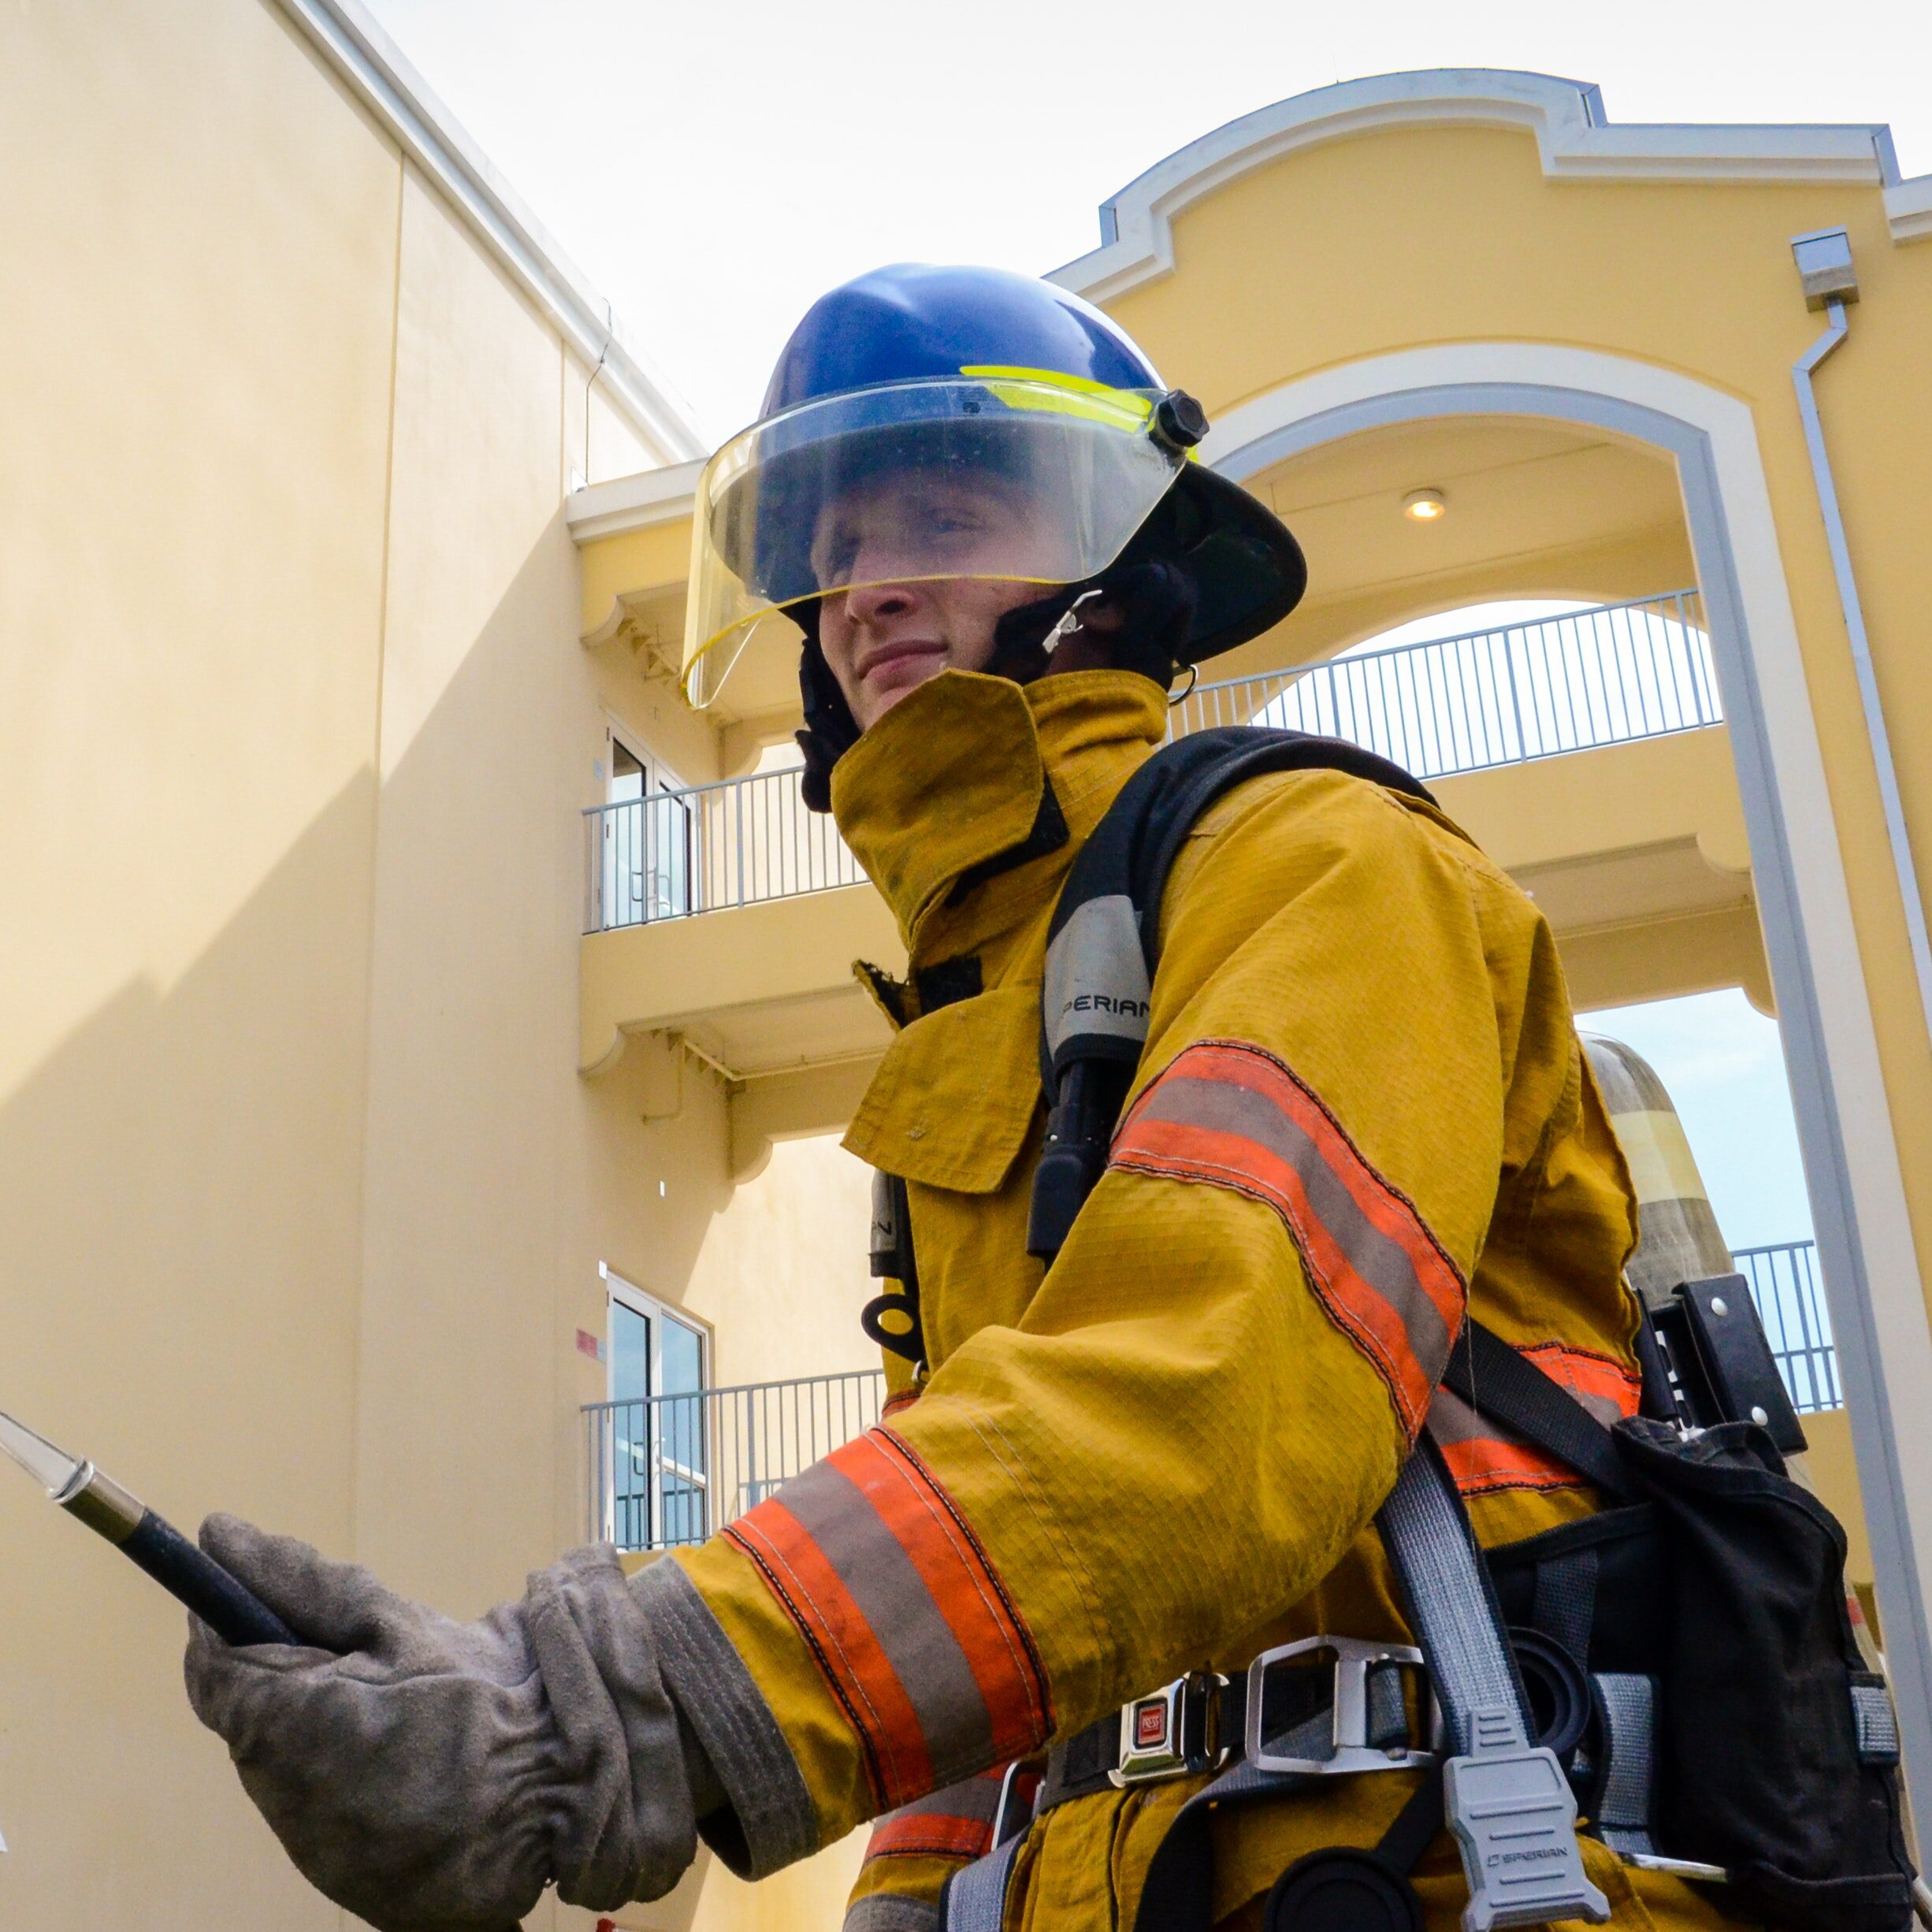 photo-of-firefighter-beside-building-896568